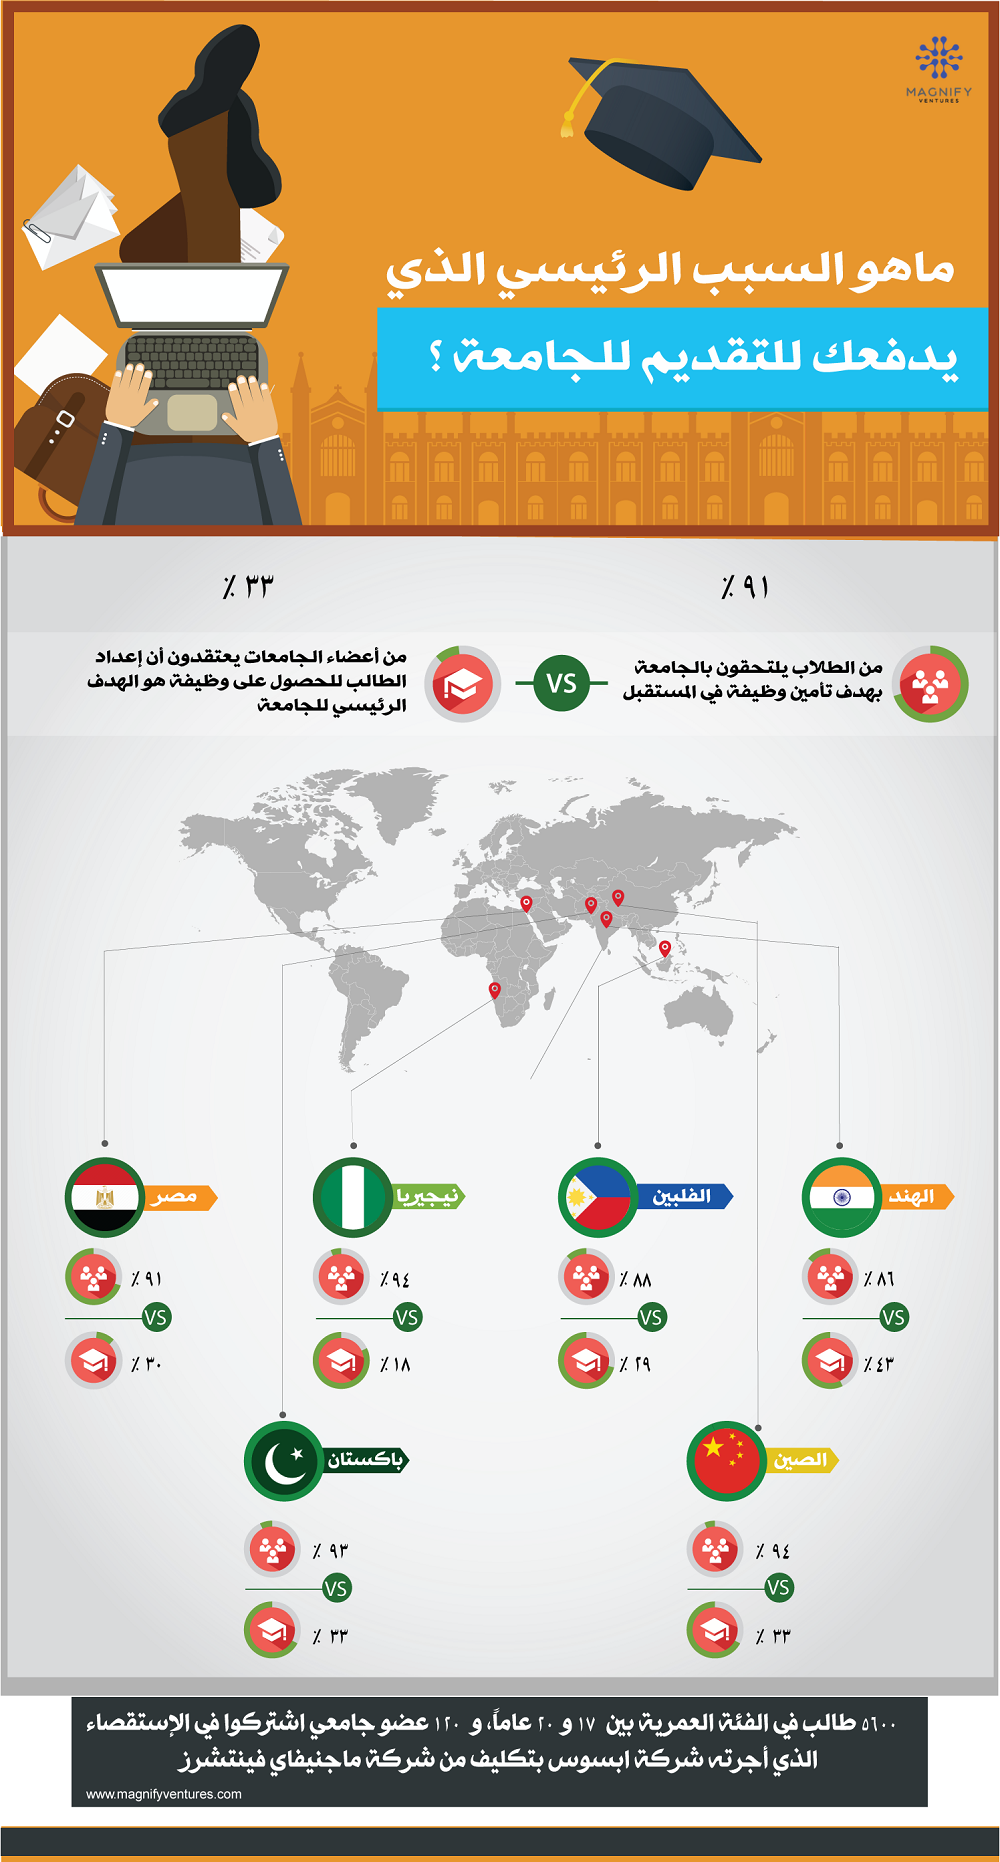 STUDENT-EXPECTATIONS-AND-UNIVERSITY-OFFERINGS-infographic-arabic